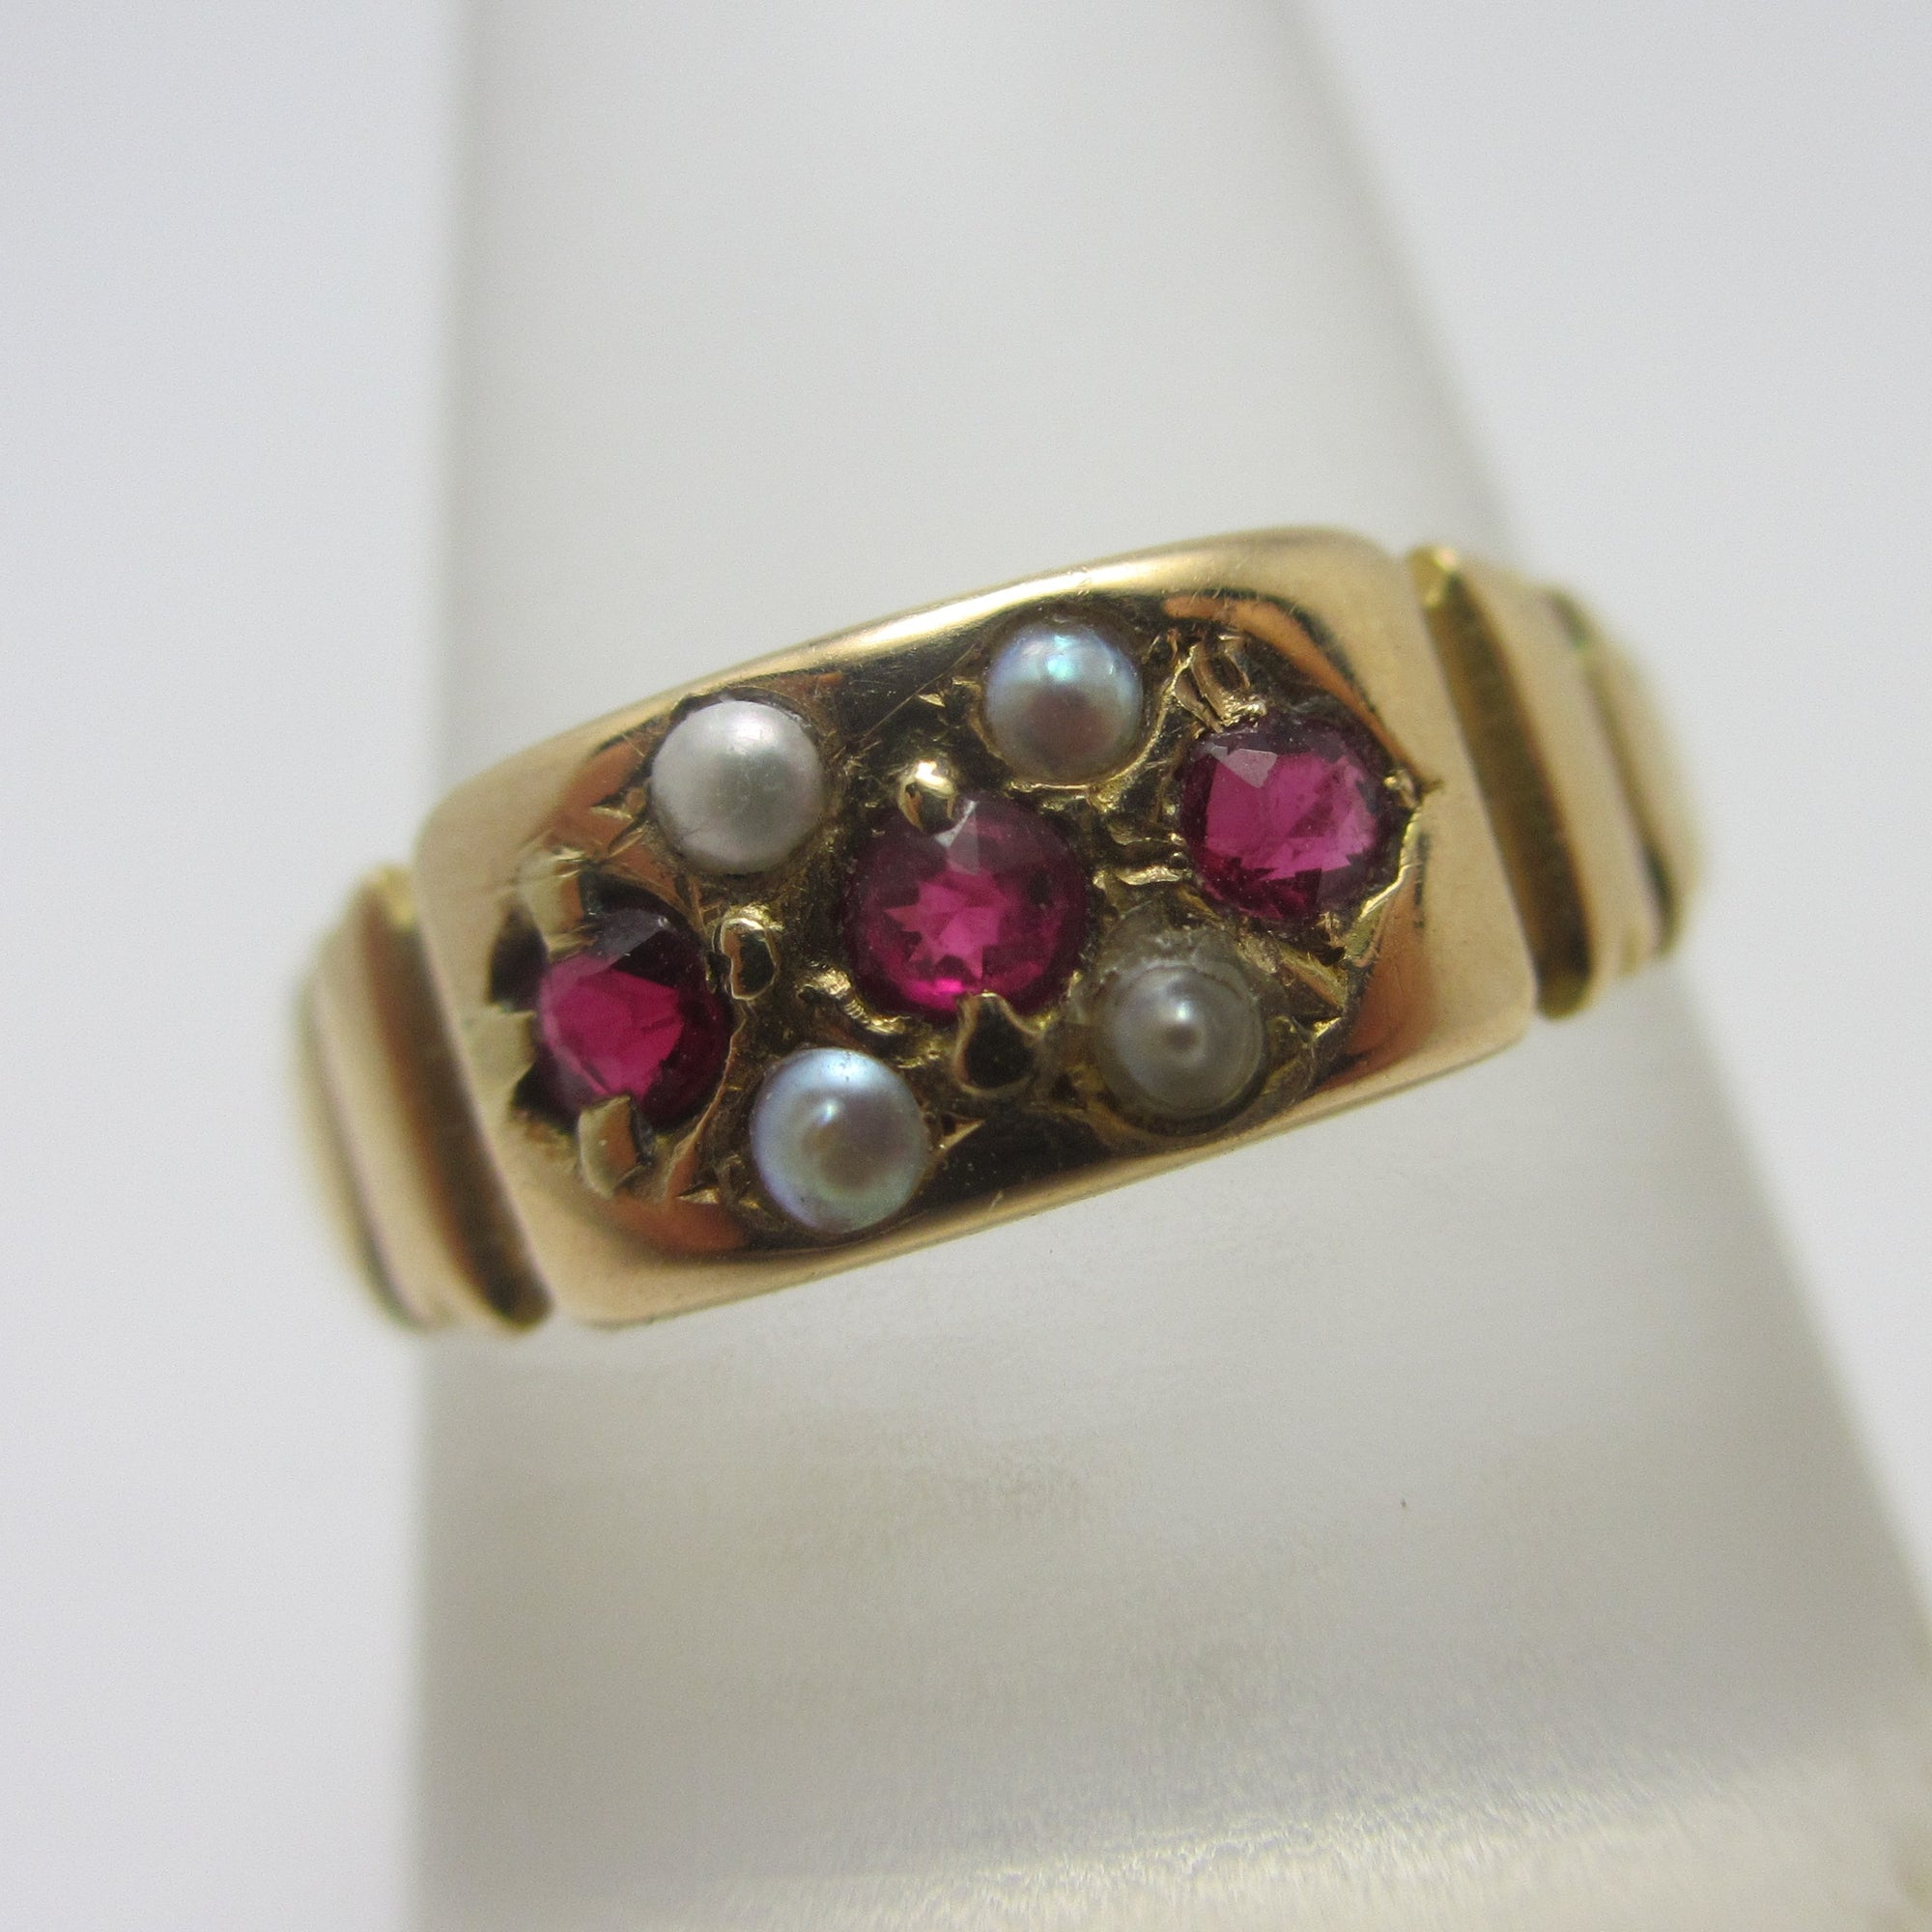 Ruby & Seed Pearl 15k Gold Ring Antique English 1888 Victorian